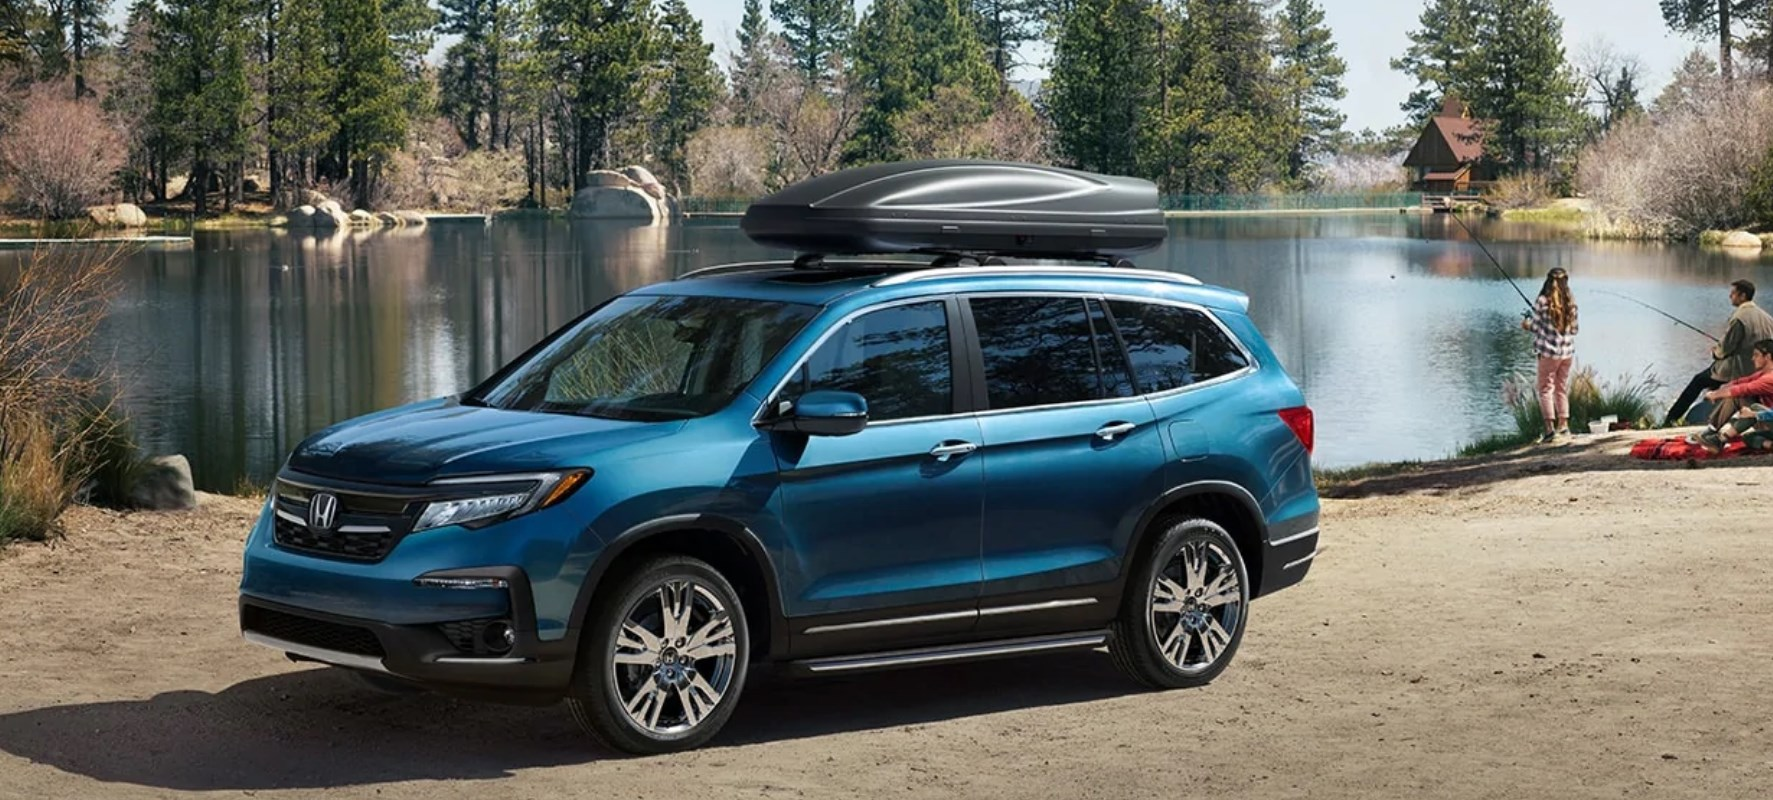 New Crossover Suv Lineup Freedom Honda Colorado Springs Co